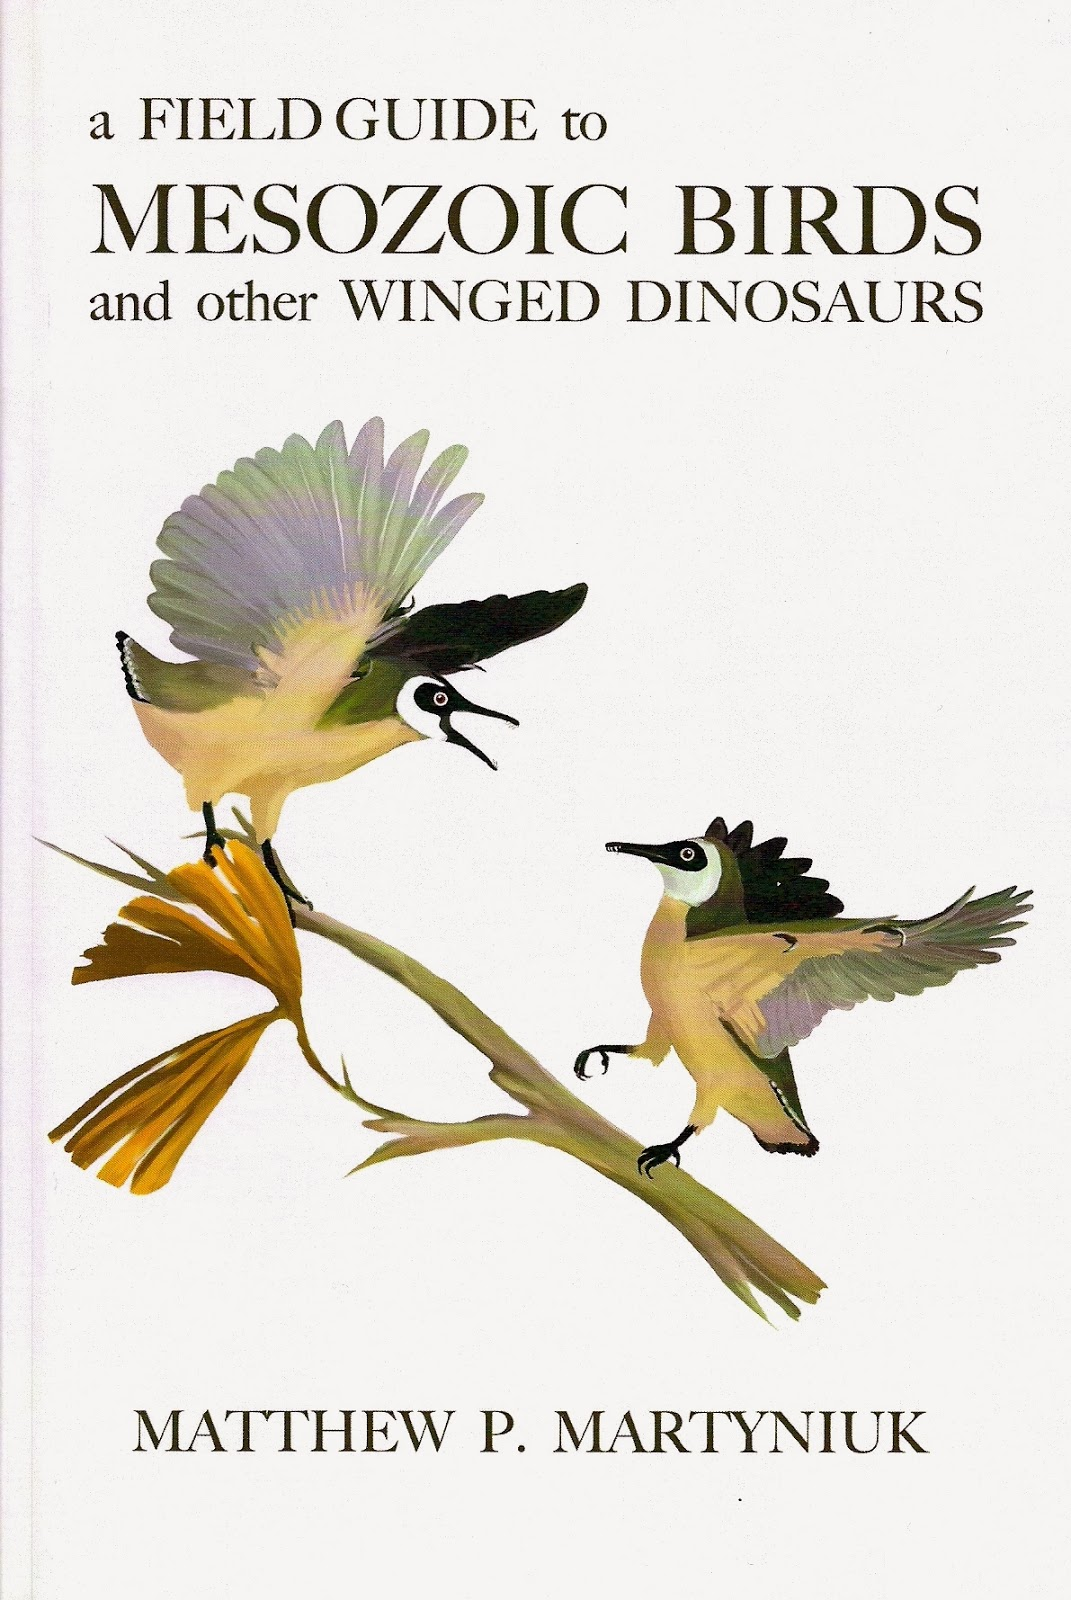 Tempi profondi febbraio 2013 palaeoart interview 2 matt martyniuk a field guide to mesozoic birds and other winged dinosaurs fandeluxe Choice Image